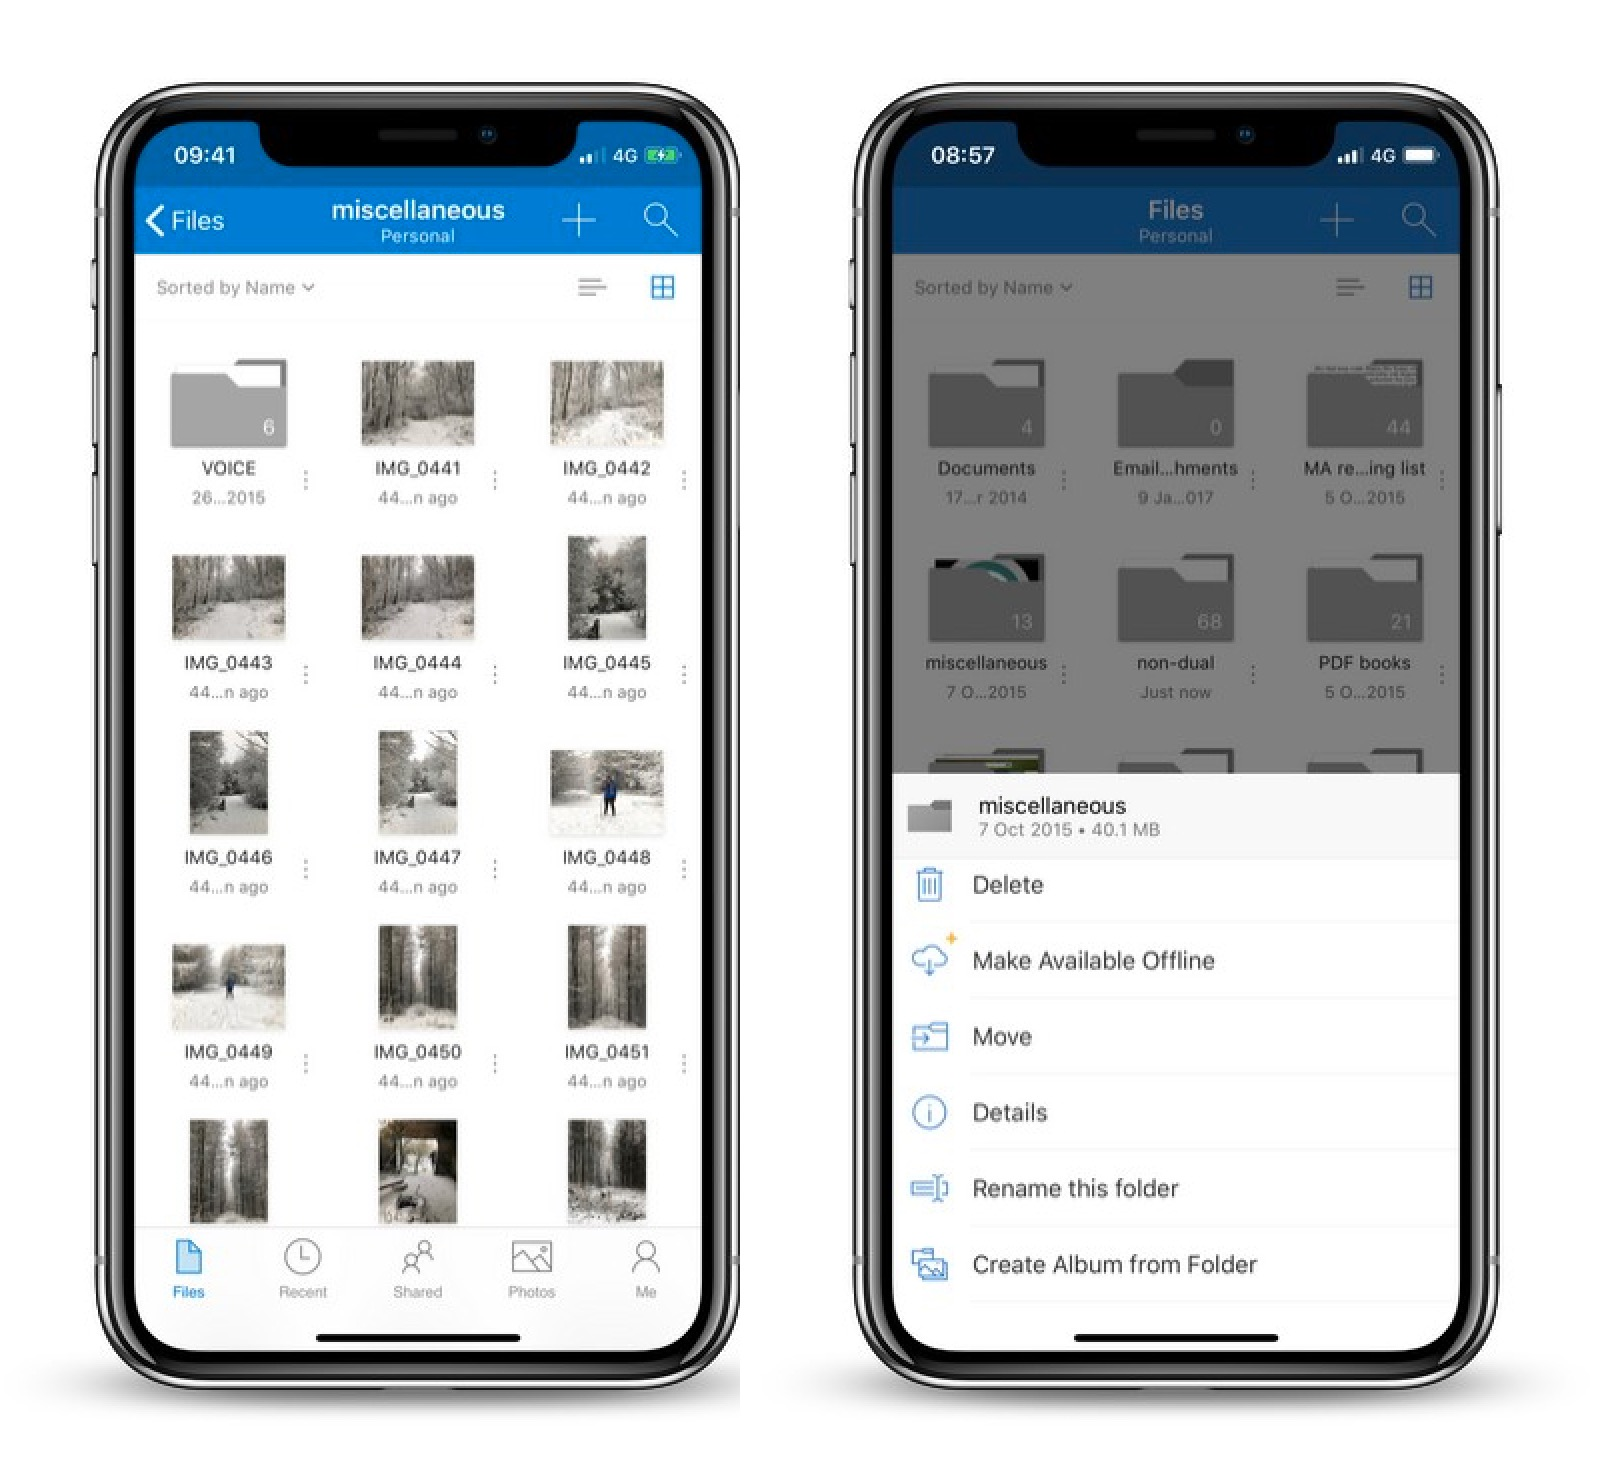 Mobile App Home Screen Redesign: OneDrive For IOS Updated With Redesigned Interface, Drag